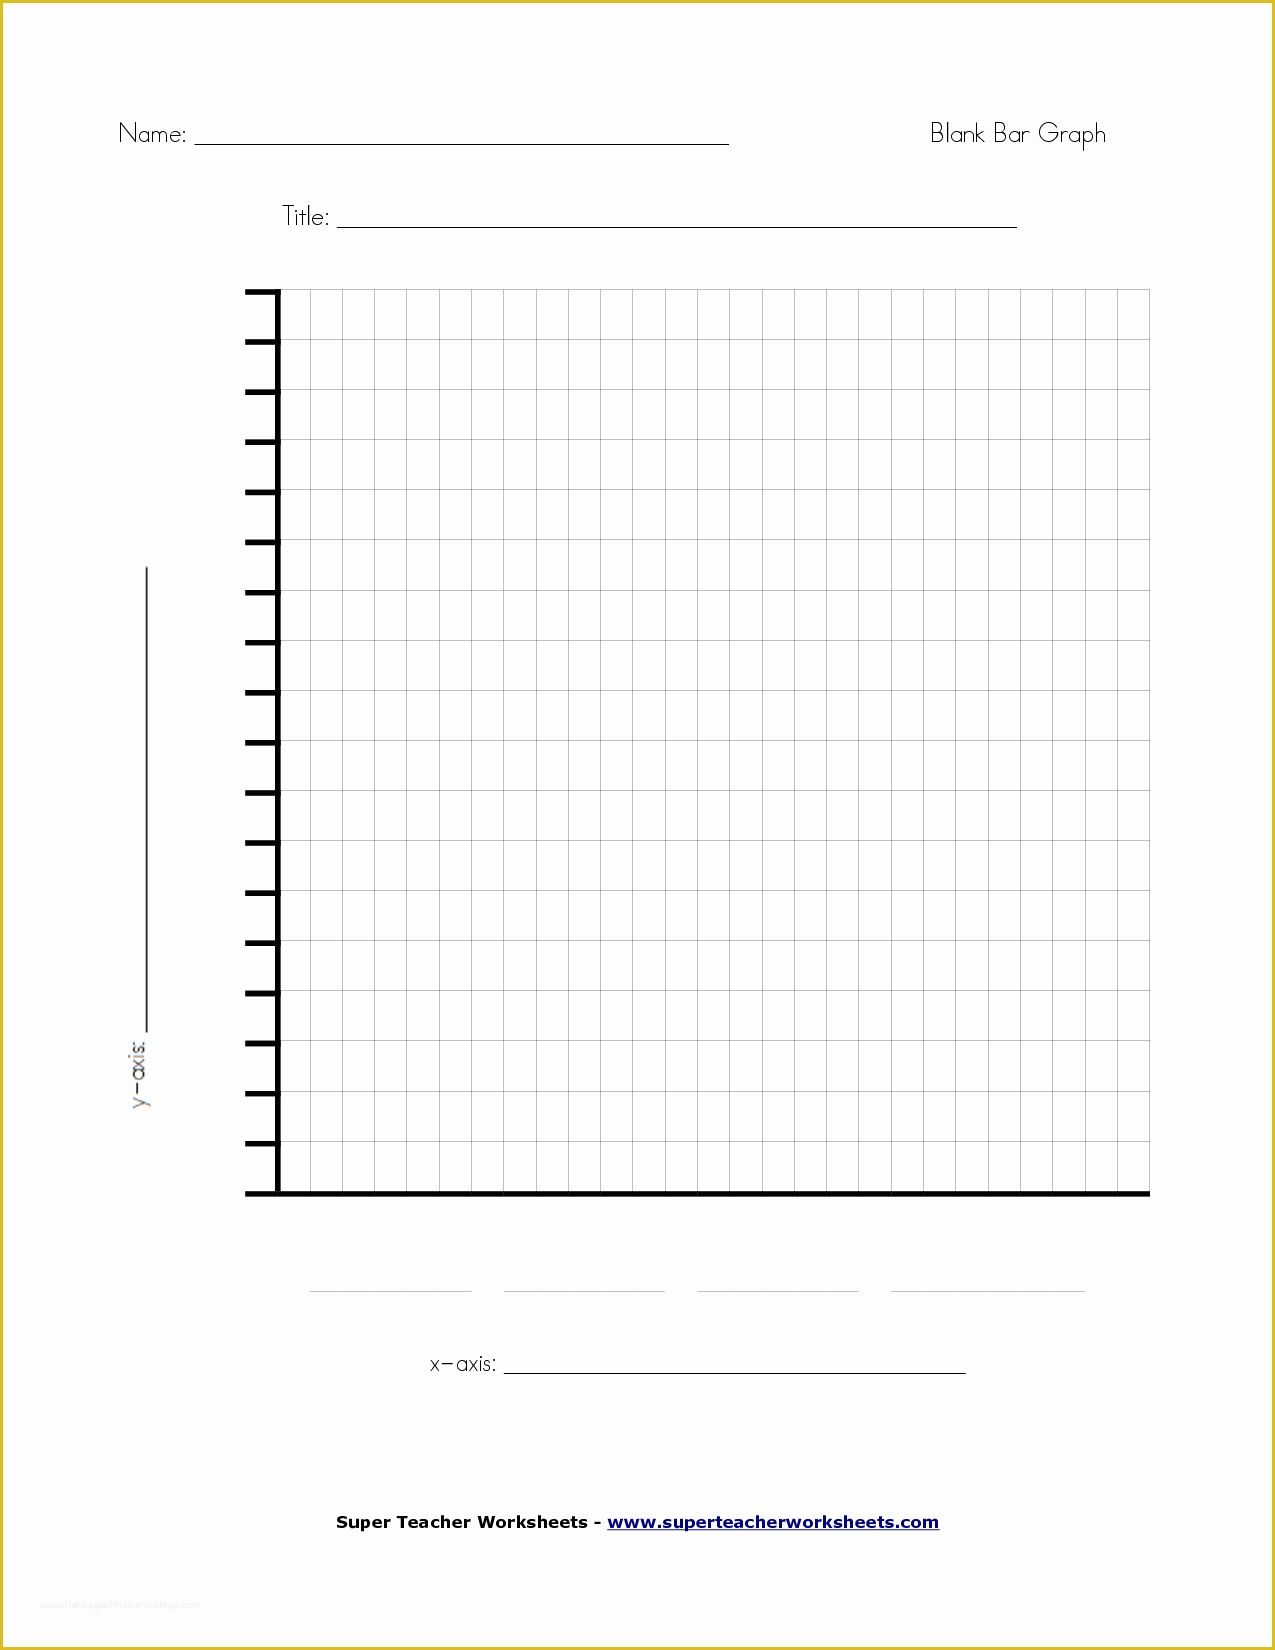 small resolution of Blank Bar Graph Worksheet   Printable Worksheets and Activities for  Teachers